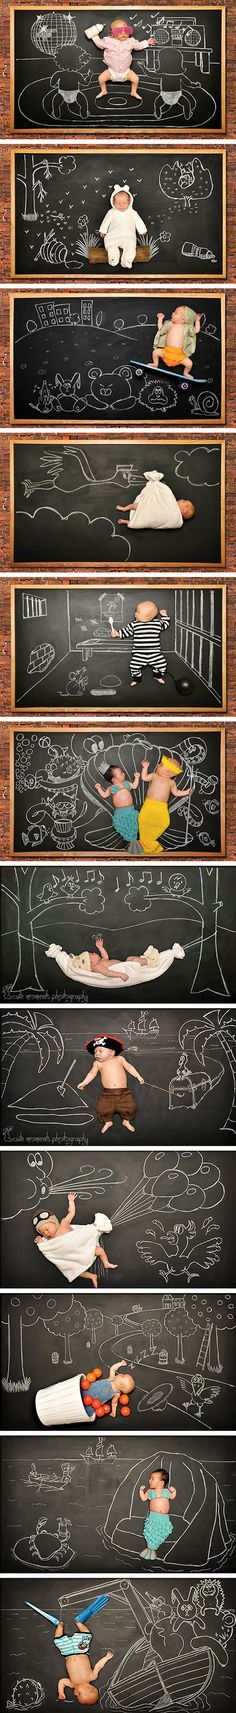 Chalkboard baby photos - I love this Hilarious!!